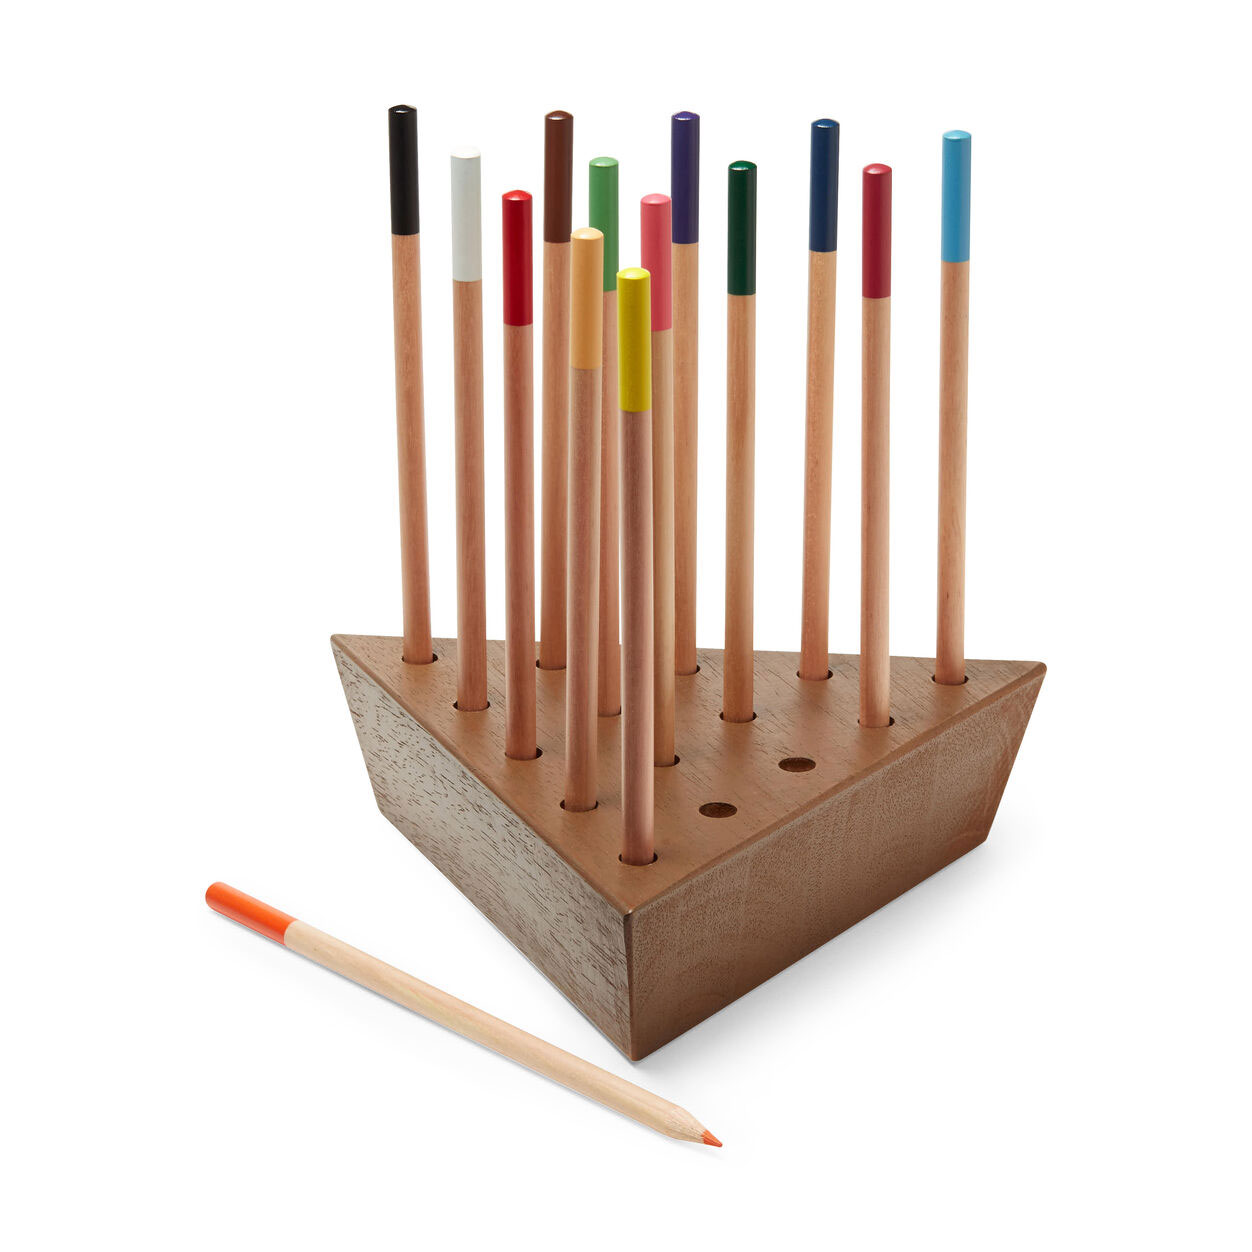 Father's Day gift ideas - Writer's Block Peg Game with Colored Pencils